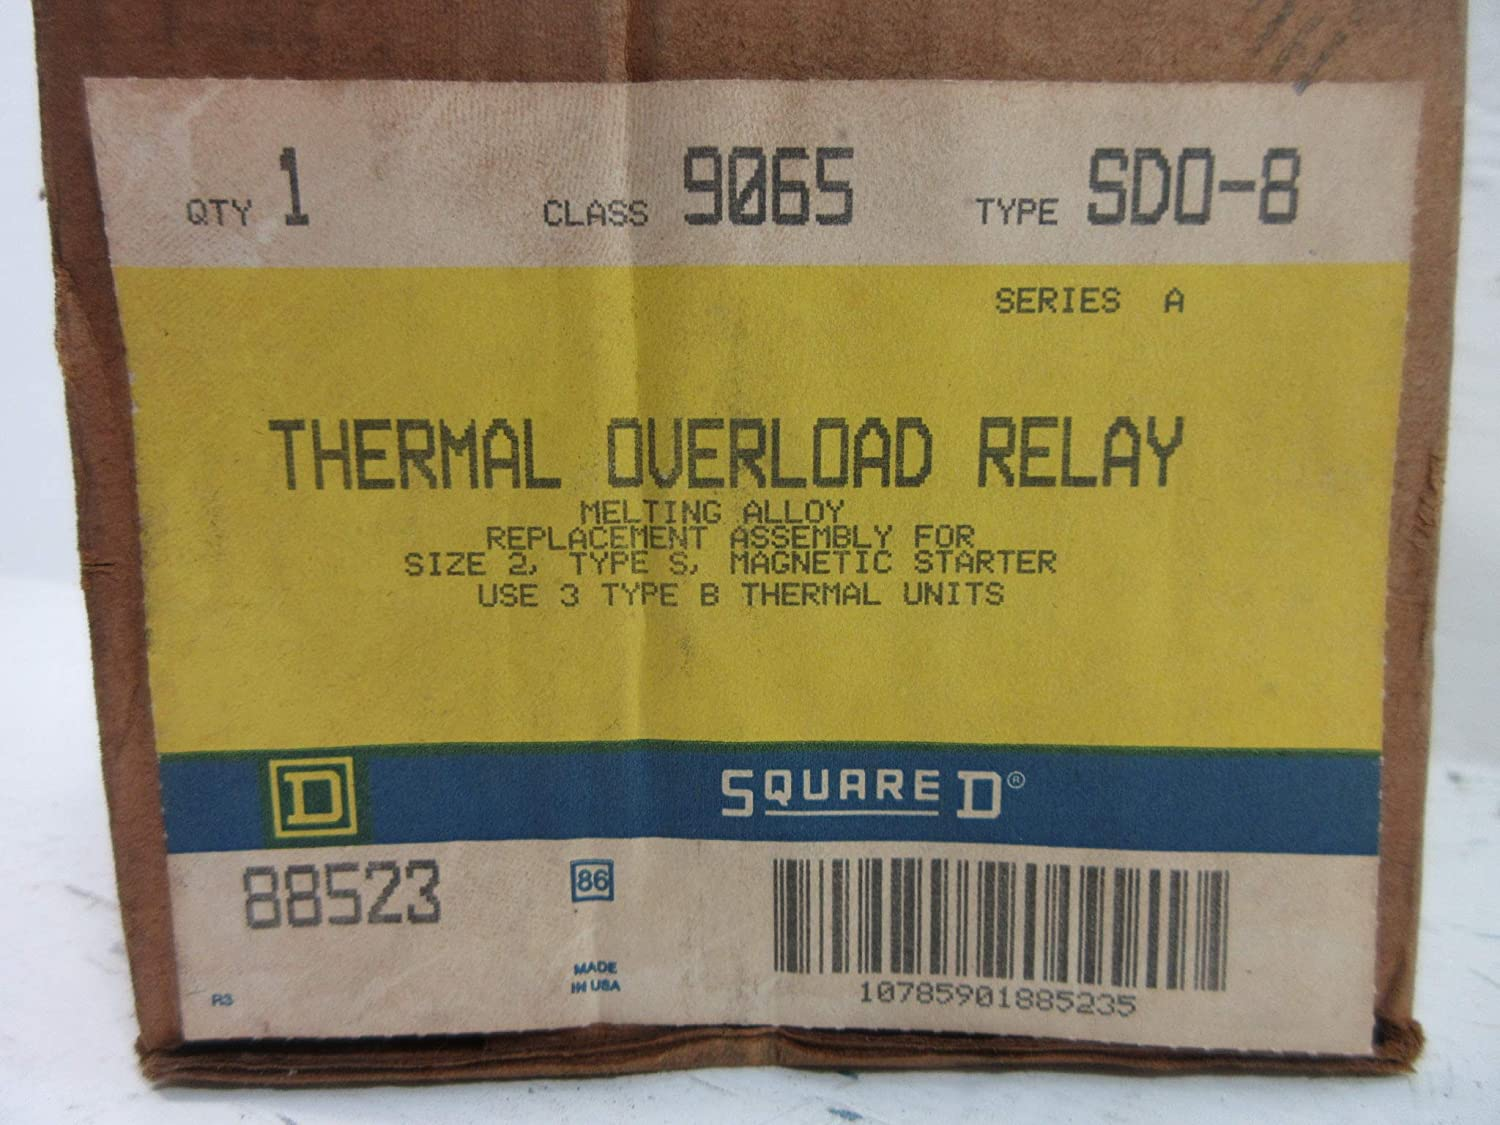 A Melting Alloy SD0-8 NIB New Square D 9065-SDO-8 Thermal Overload Relay Ser